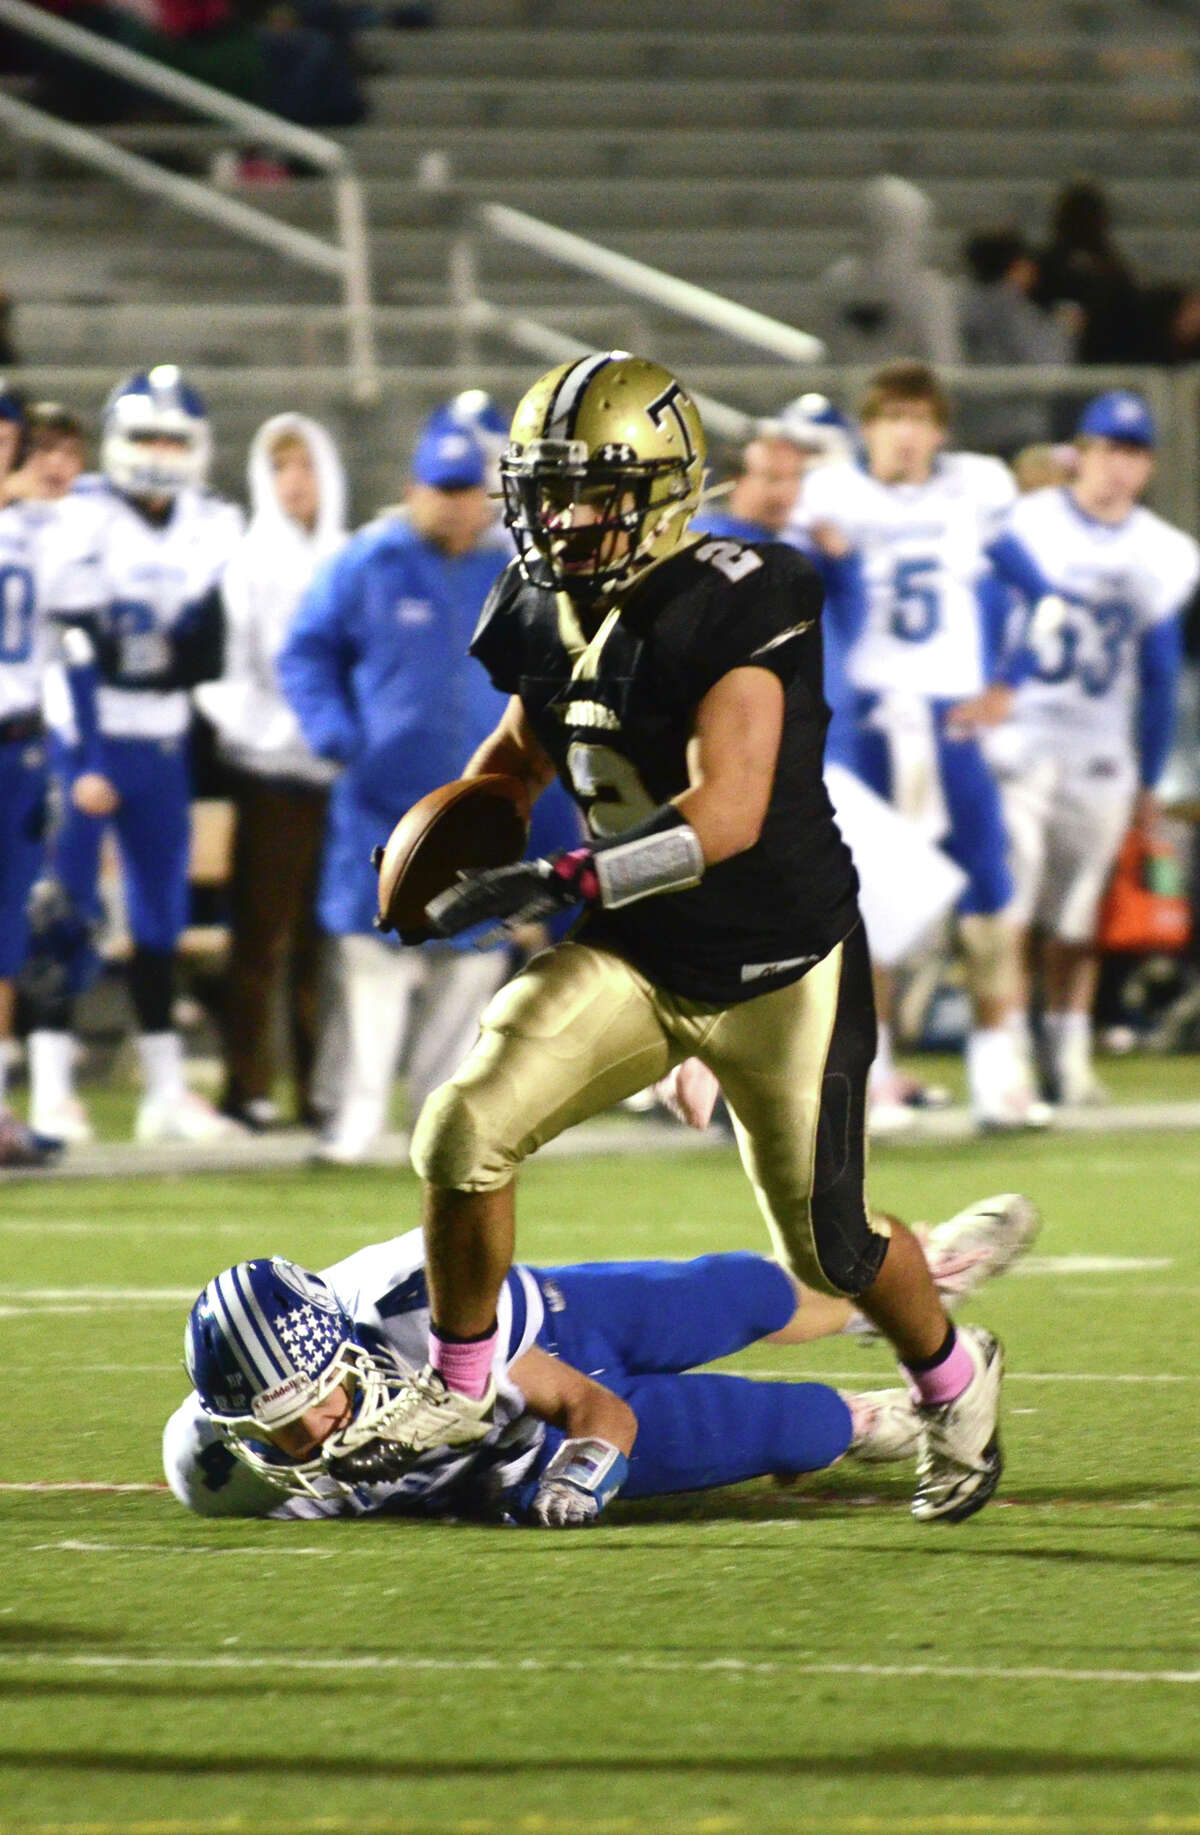 Trumbull's Ryan Pearson (2) carries the ball, stepping over Darien defender Jackson Whiting (4), during the football game against Darien at Trumbull High School on Friday, Oct. 12, 2012.